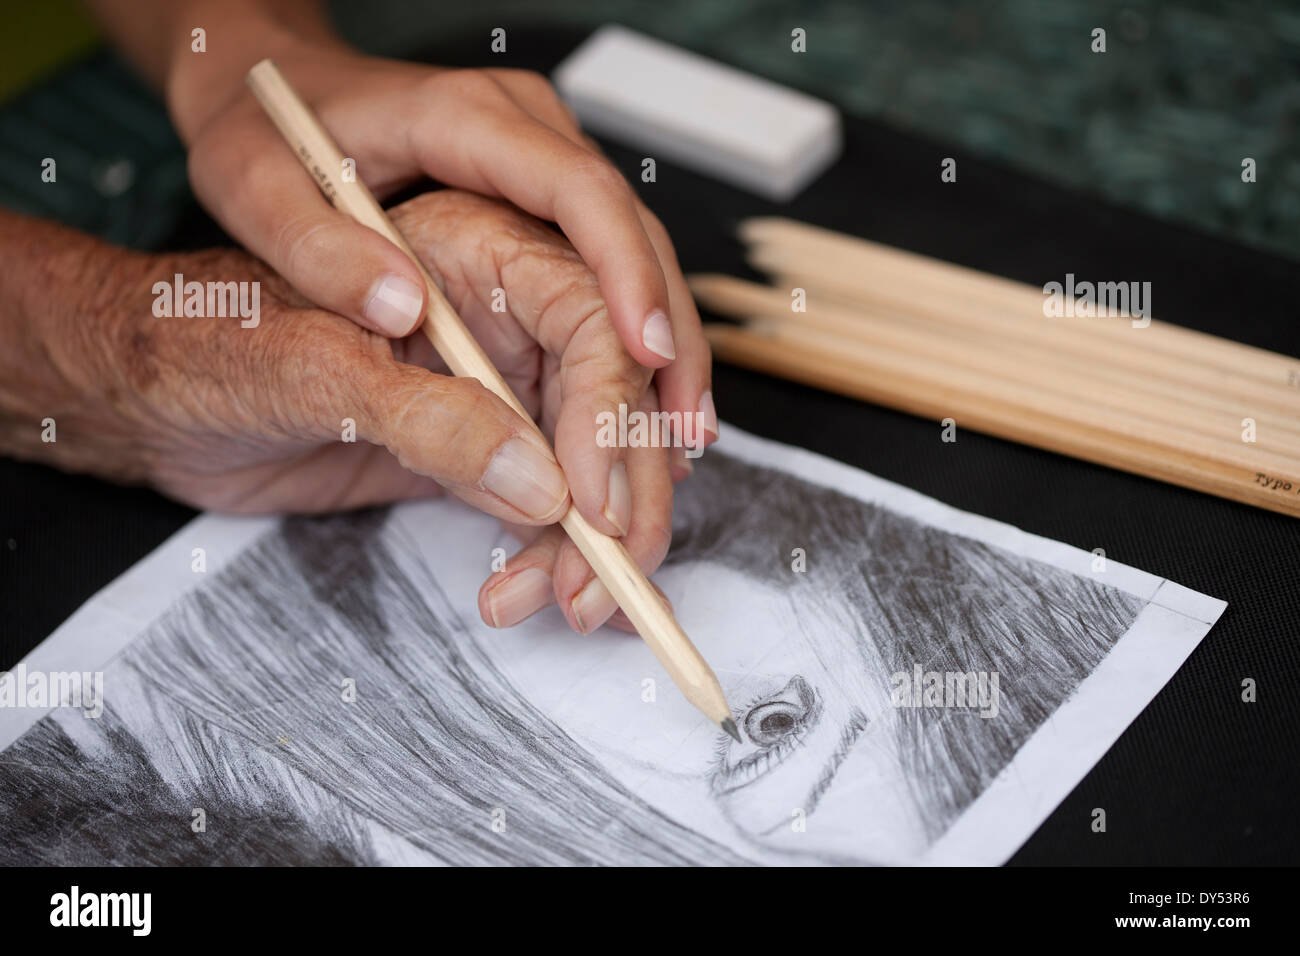 Close up of senior woman's hand doing a pencil drawing - Stock Image